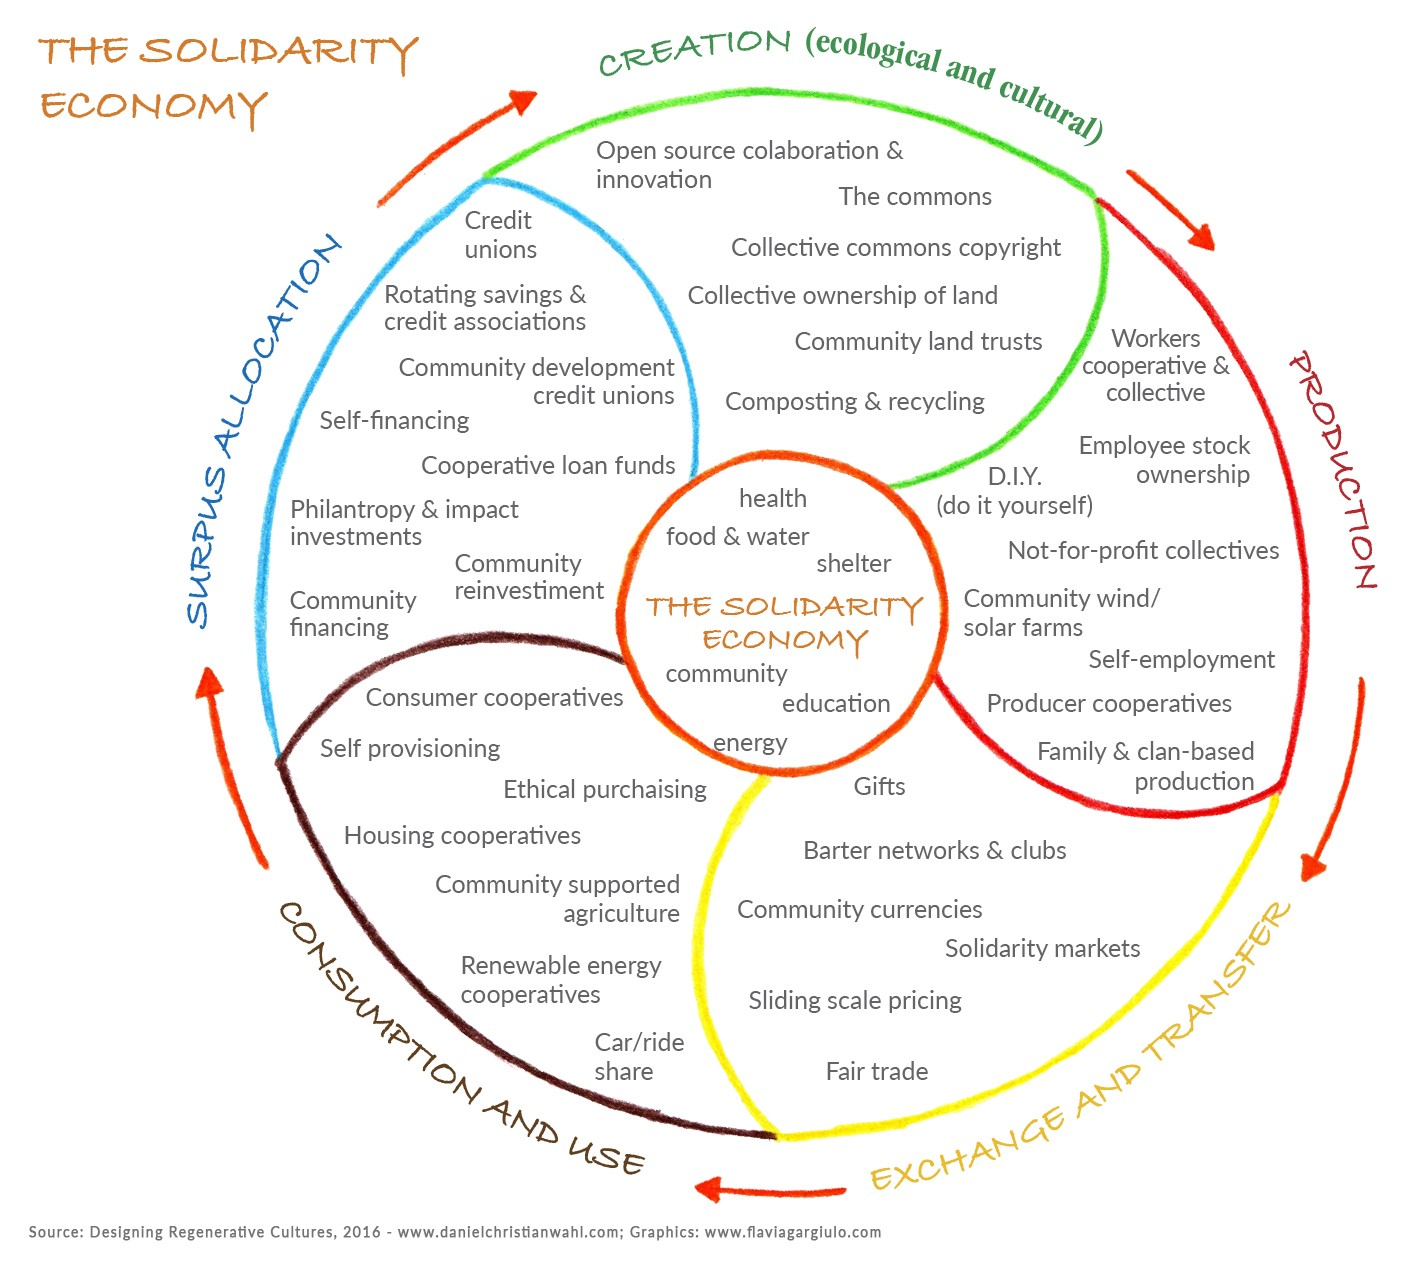 Thriving communities the solidarity economy daniel christian figure 25 the solidarity economy redrawn with original content with permission of ethan miller malvernweather Images